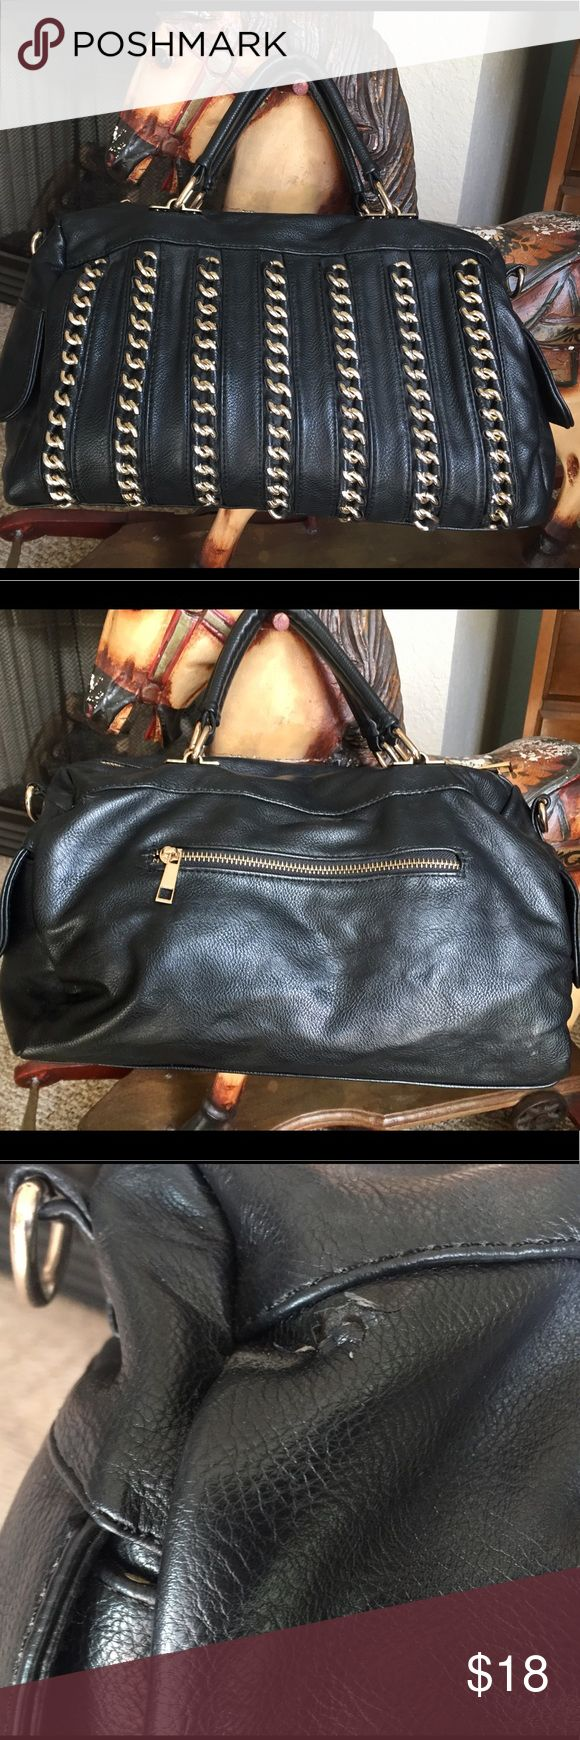 Cute purse by MMS Black purse with gold hardware. Has one zippered compartment in the side and 2 pockets on the side that closes with magnetic push buttons. Little cut on the back, see picture and the zipper in the inside compartment is broken. Priced accordingly. Bags